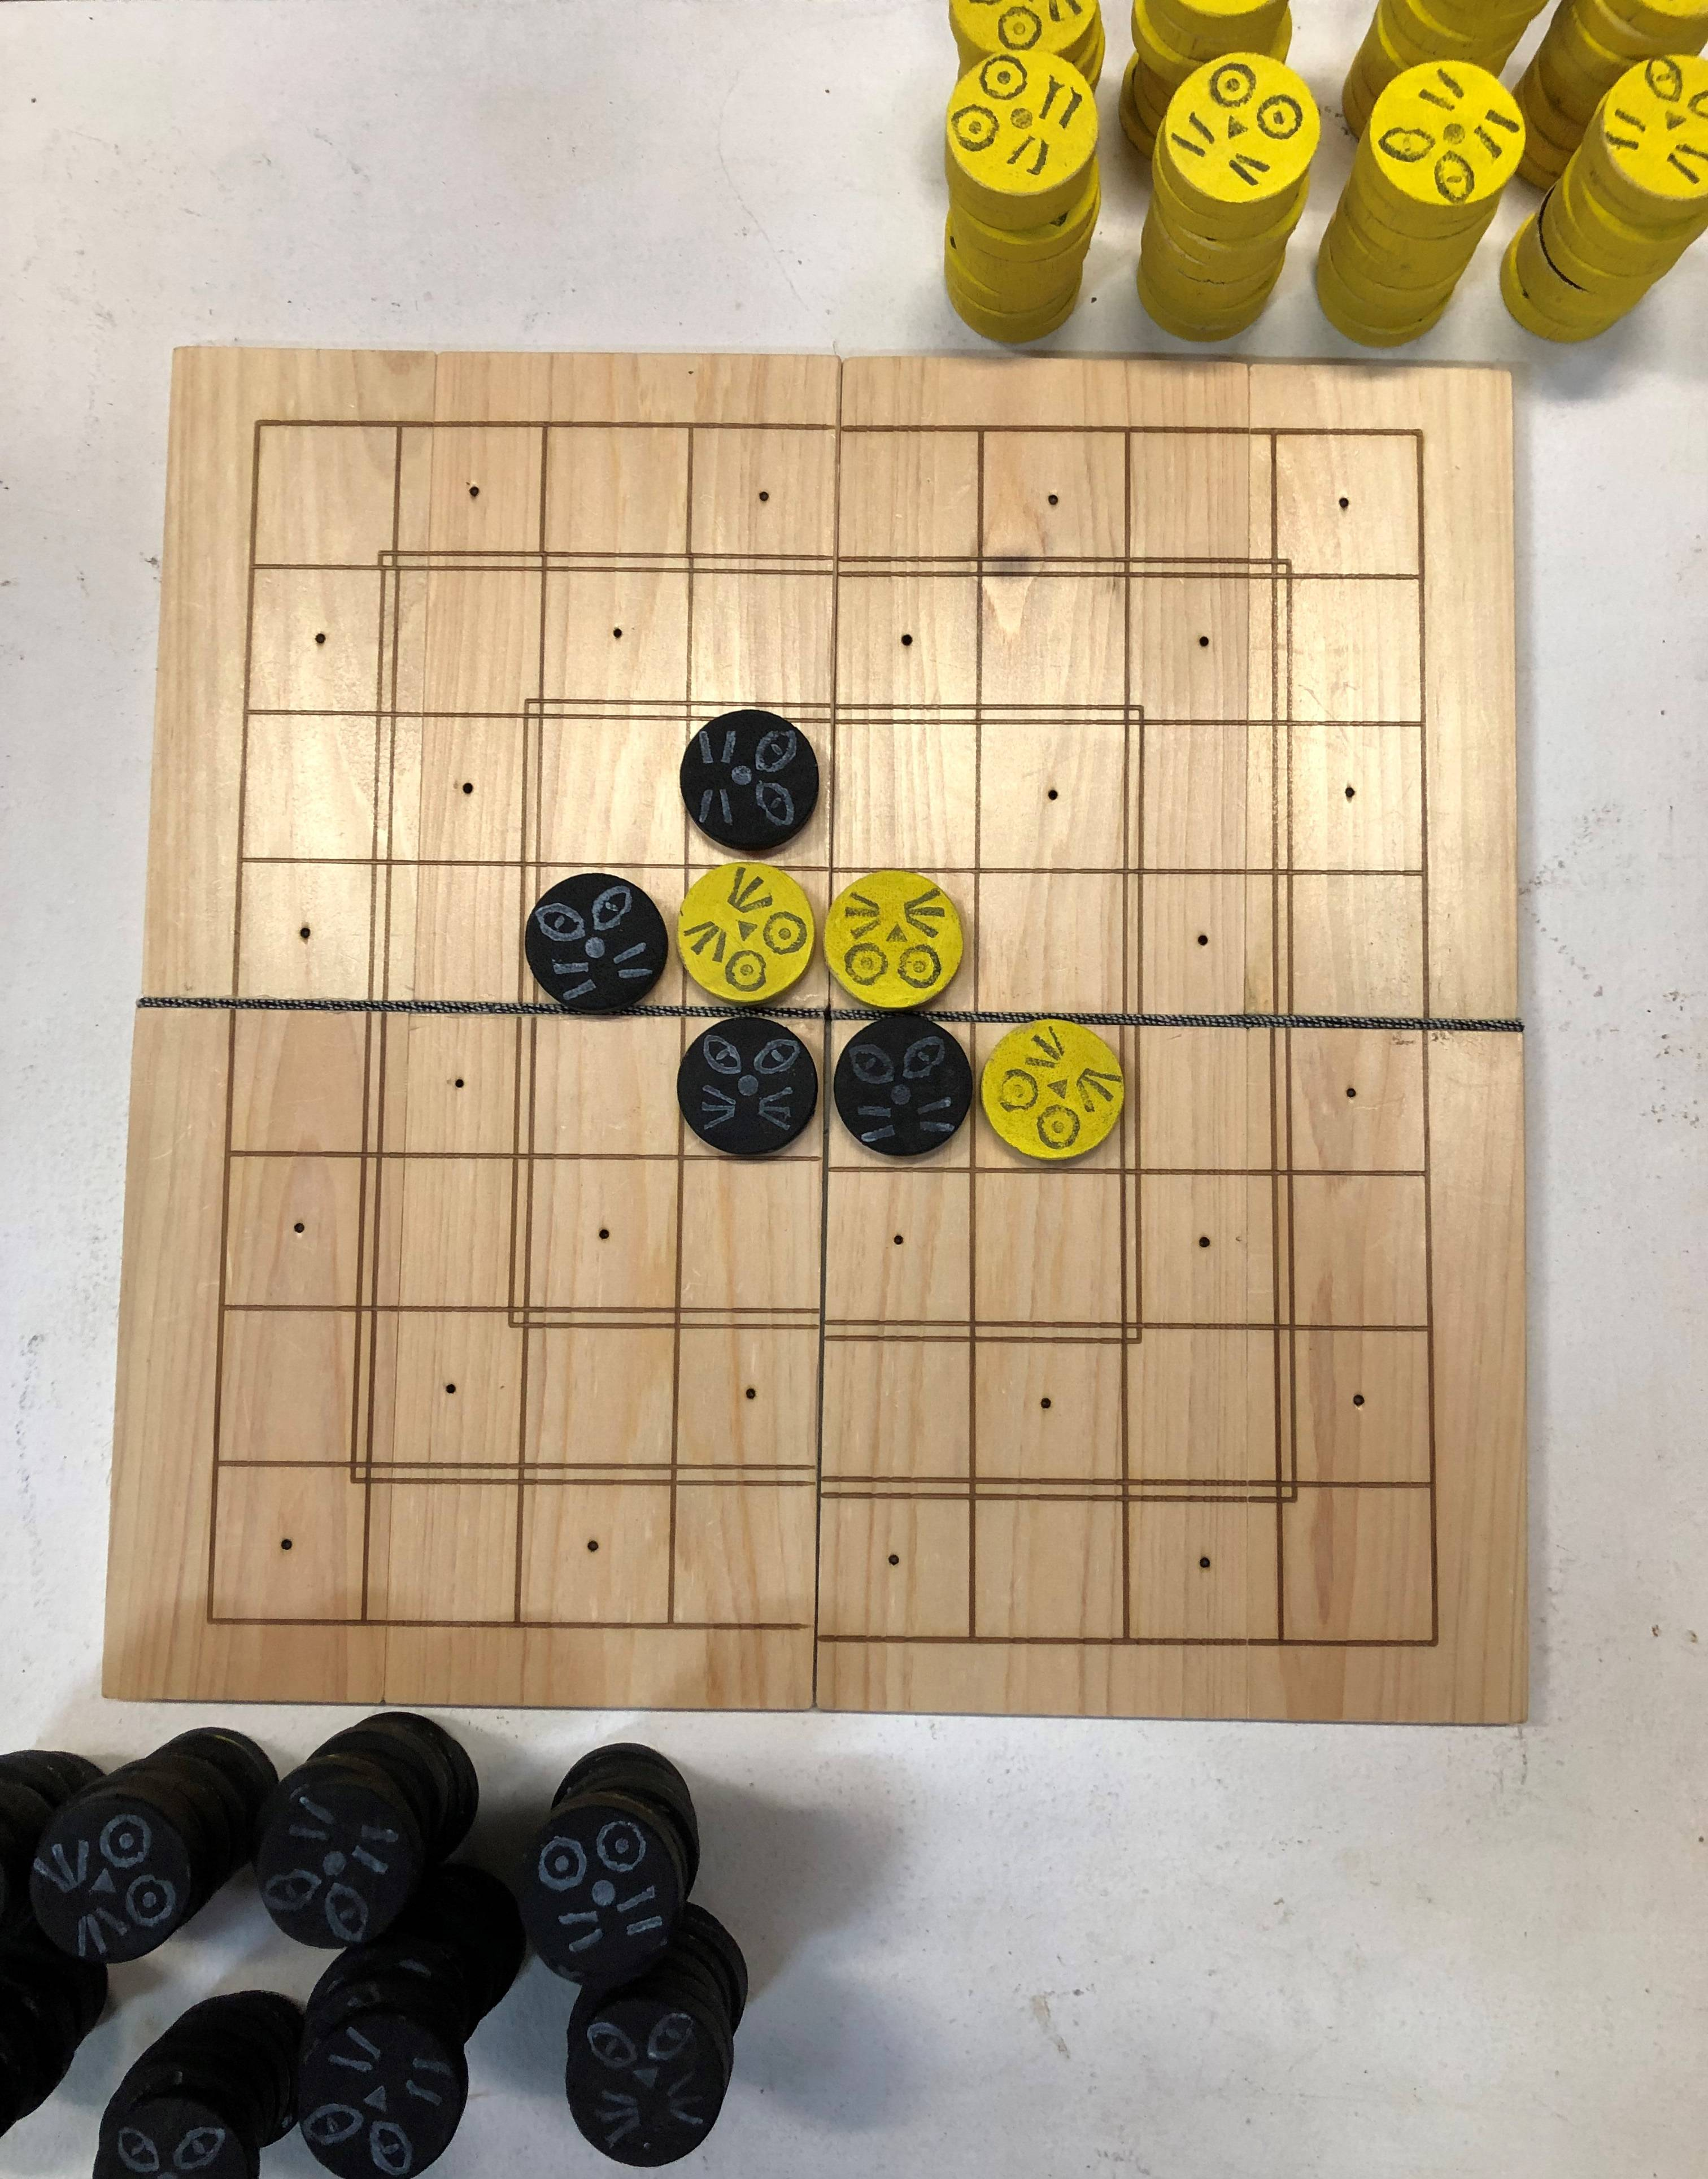 moriarts :  Wooden Puzzles & Games画像